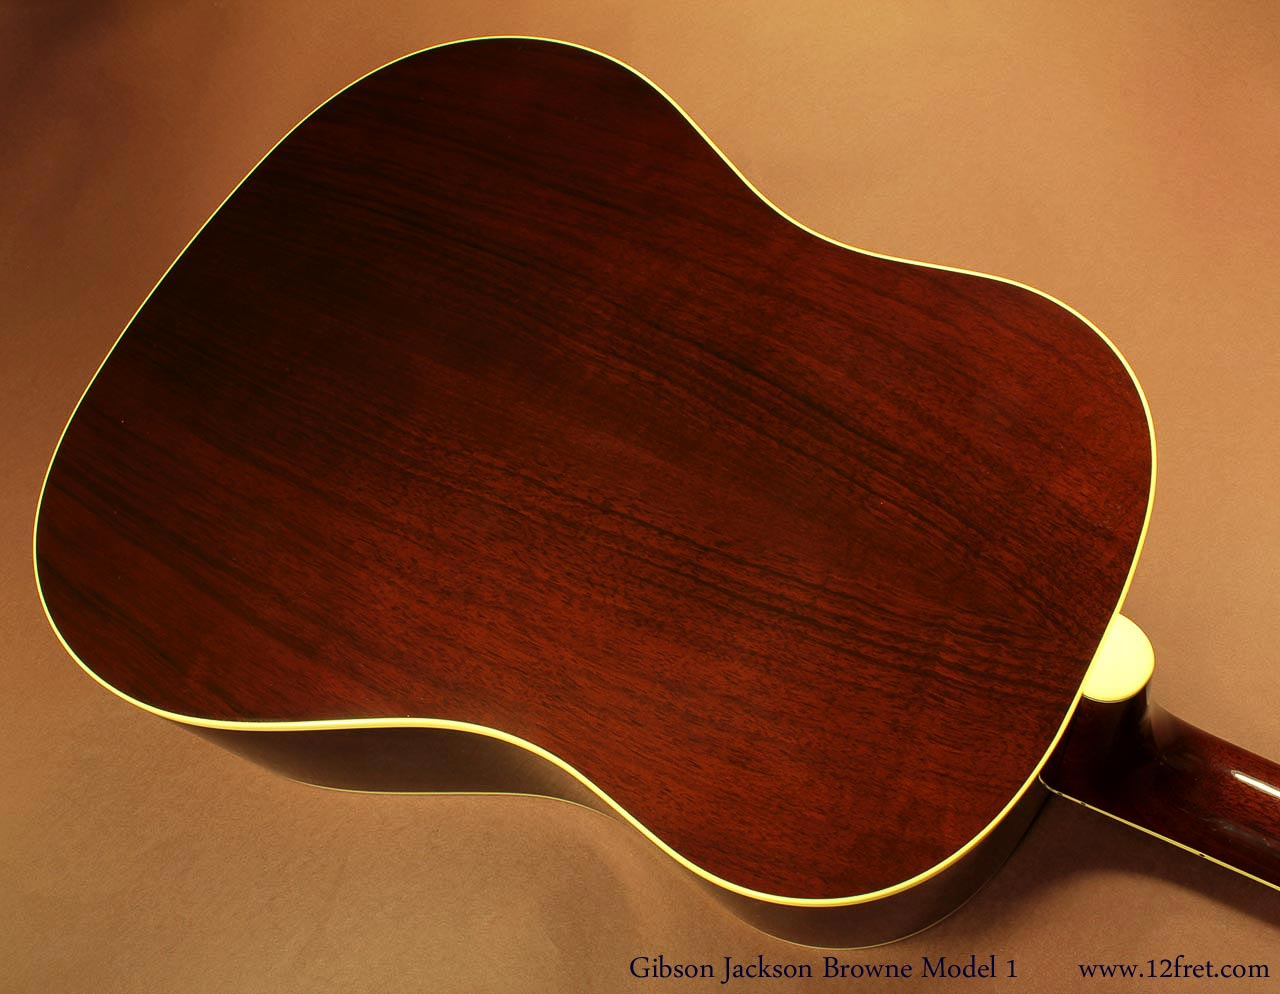 gibson-jackson-browne-model-1-back-1